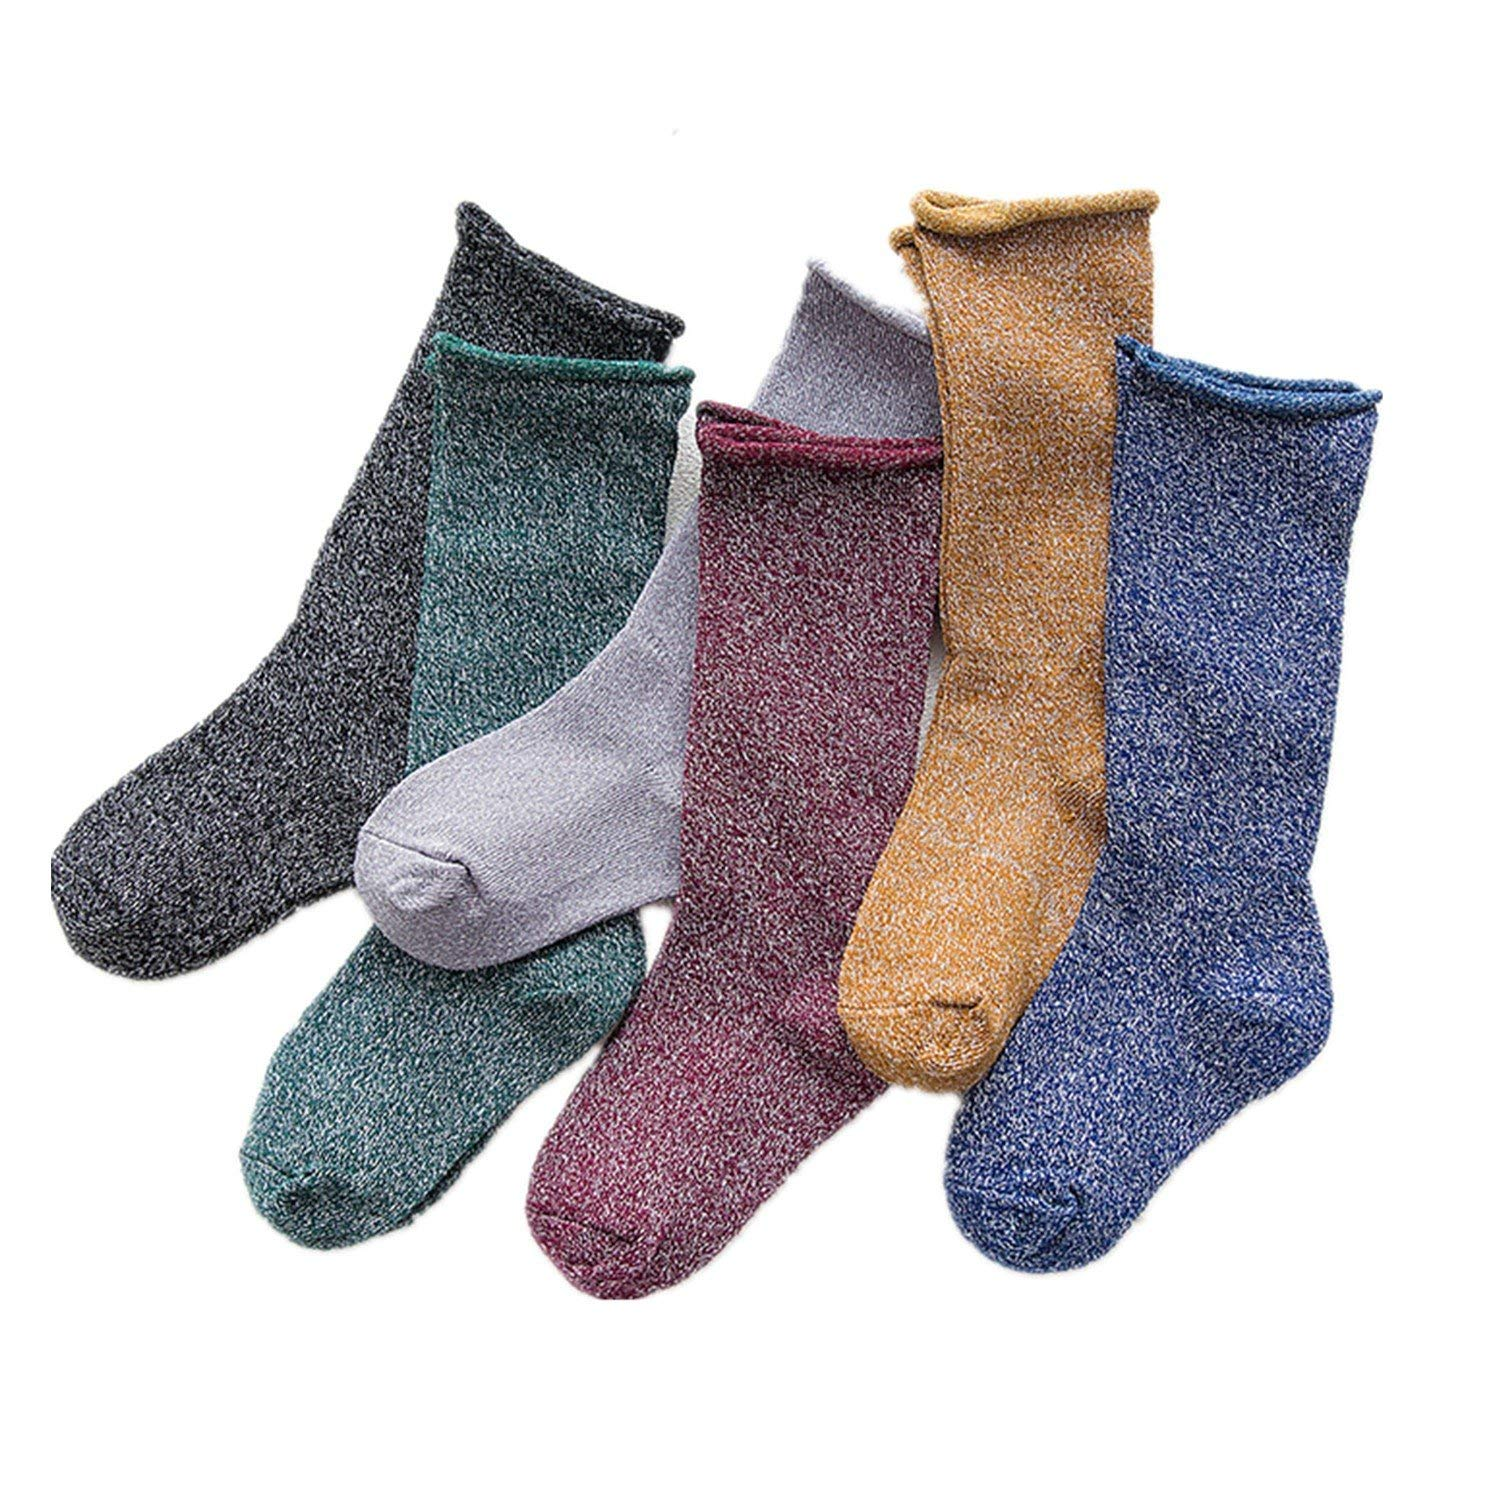 4a9ca6a8bc Get Quotations · JIEYA 3-Pack or 6-Pack Baby Toddler Silver Thread Loose  Style Crew Socks